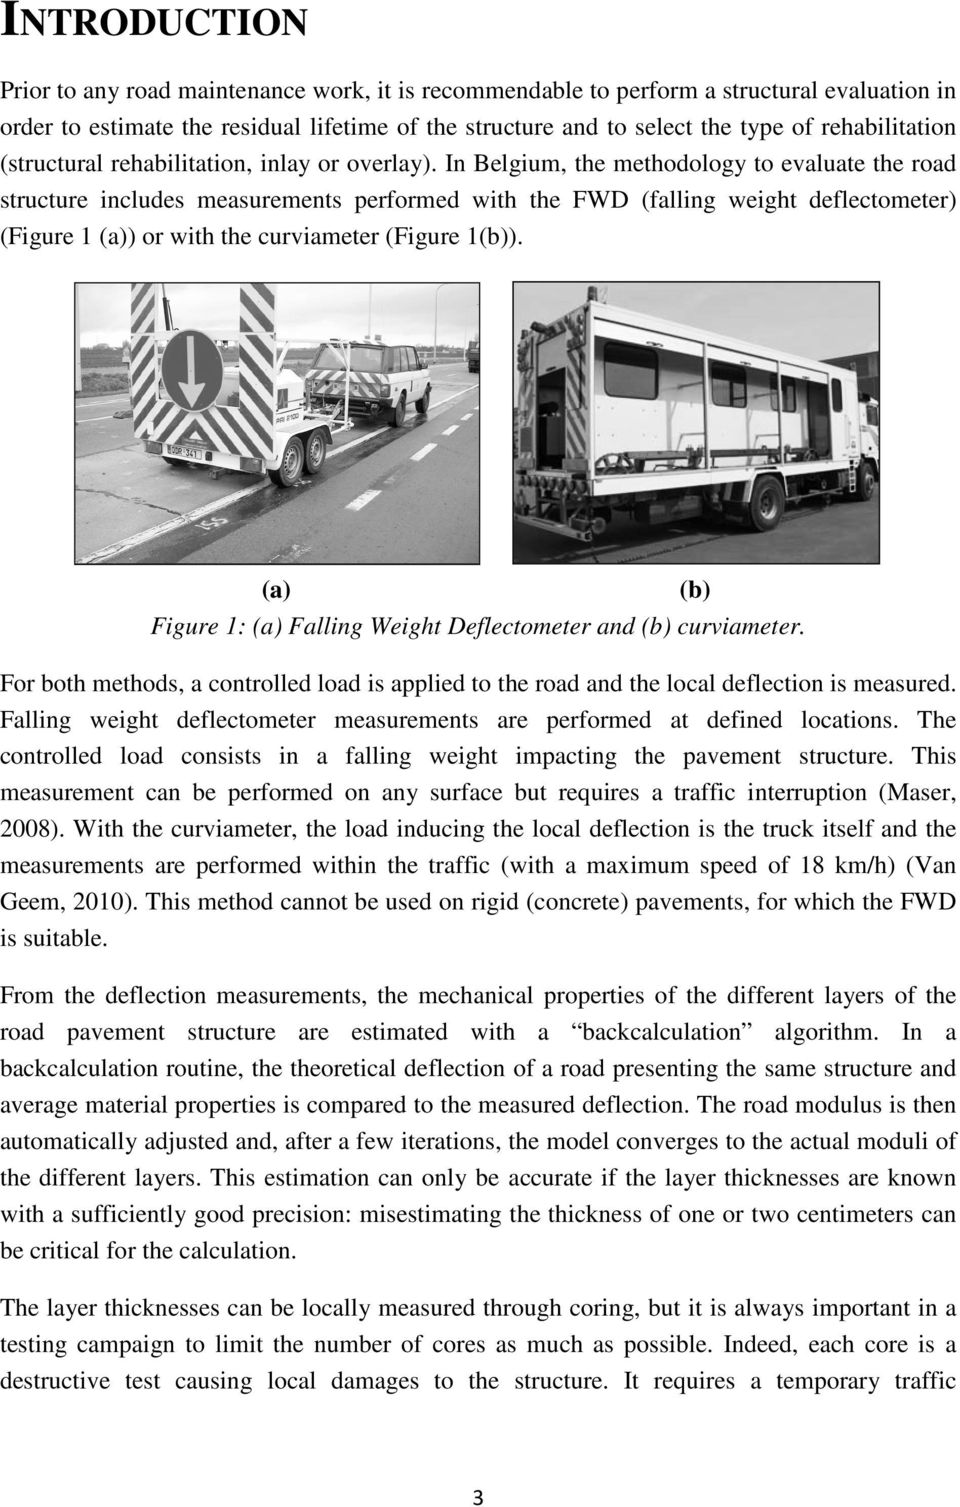 In Belgium, the methodology to evaluate the road structure includes measurements performed with the FWD (falling weight deflectometer) (Figure 1 (a)) or with the curviameter (Figure 1(b)).